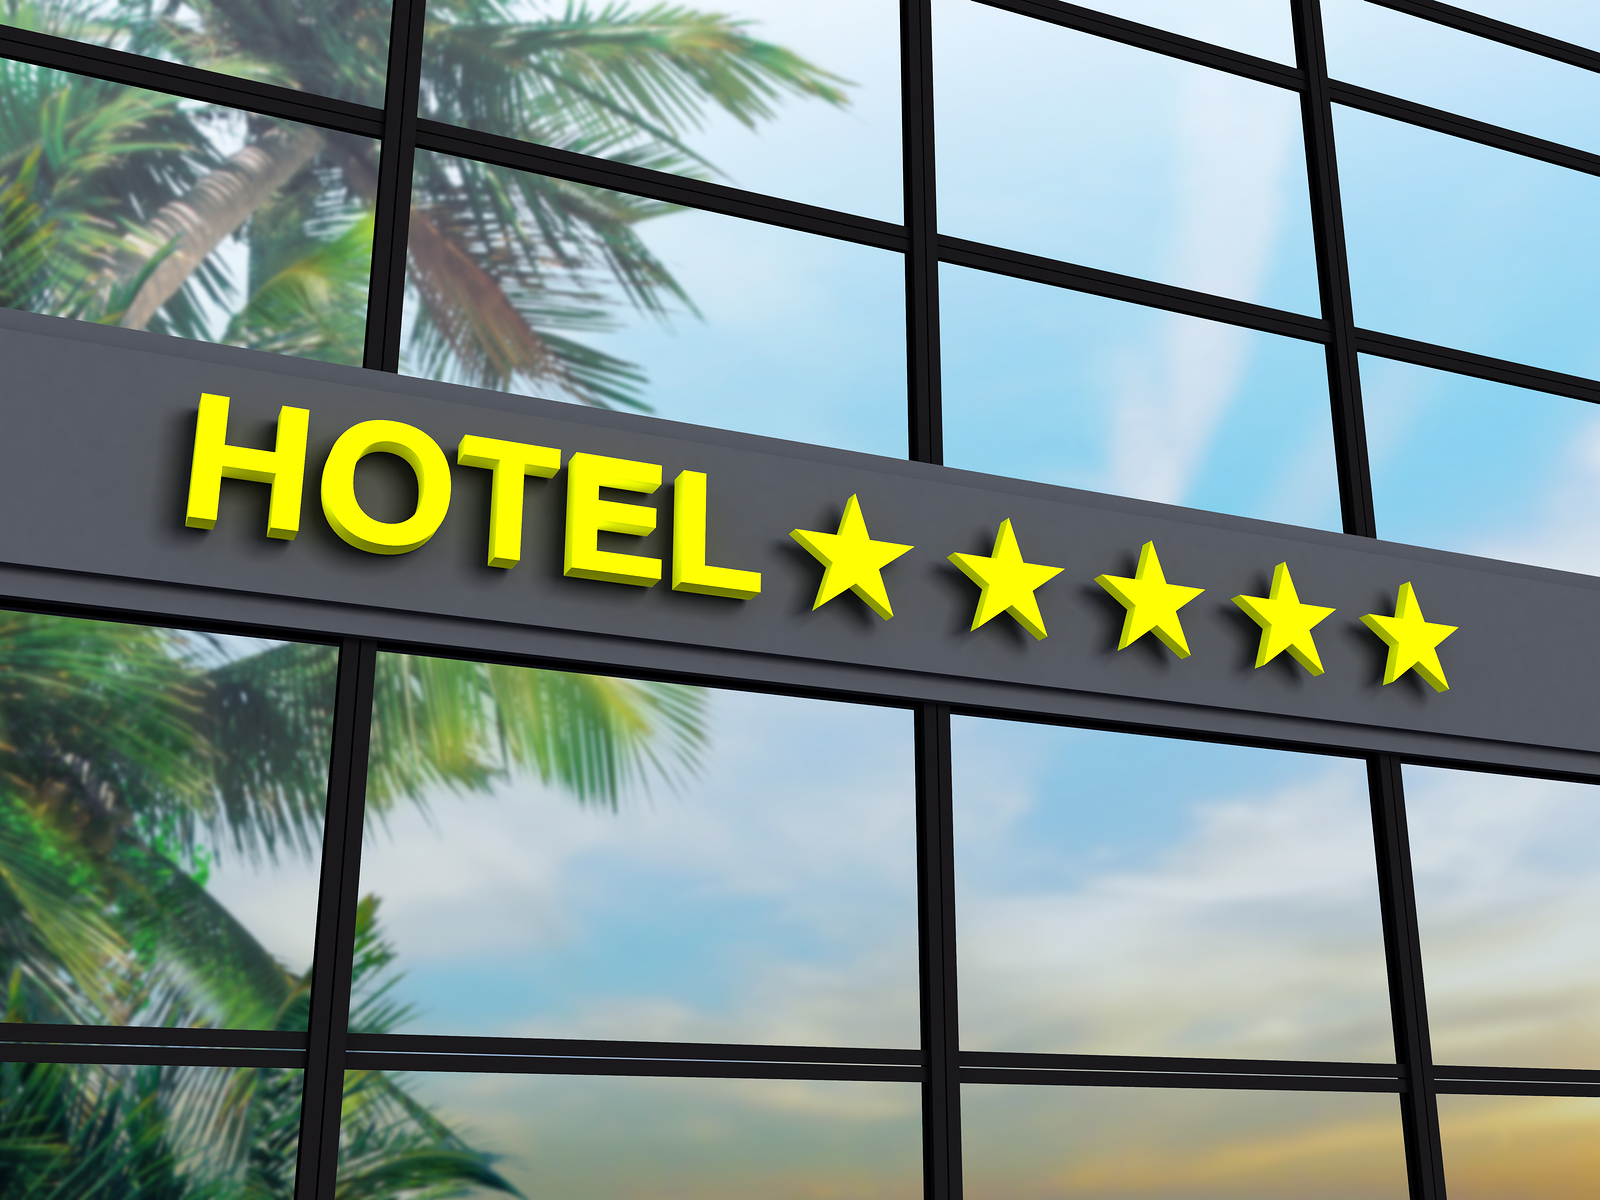 Holiday season approaching, 4-5 star hotels are given the green light